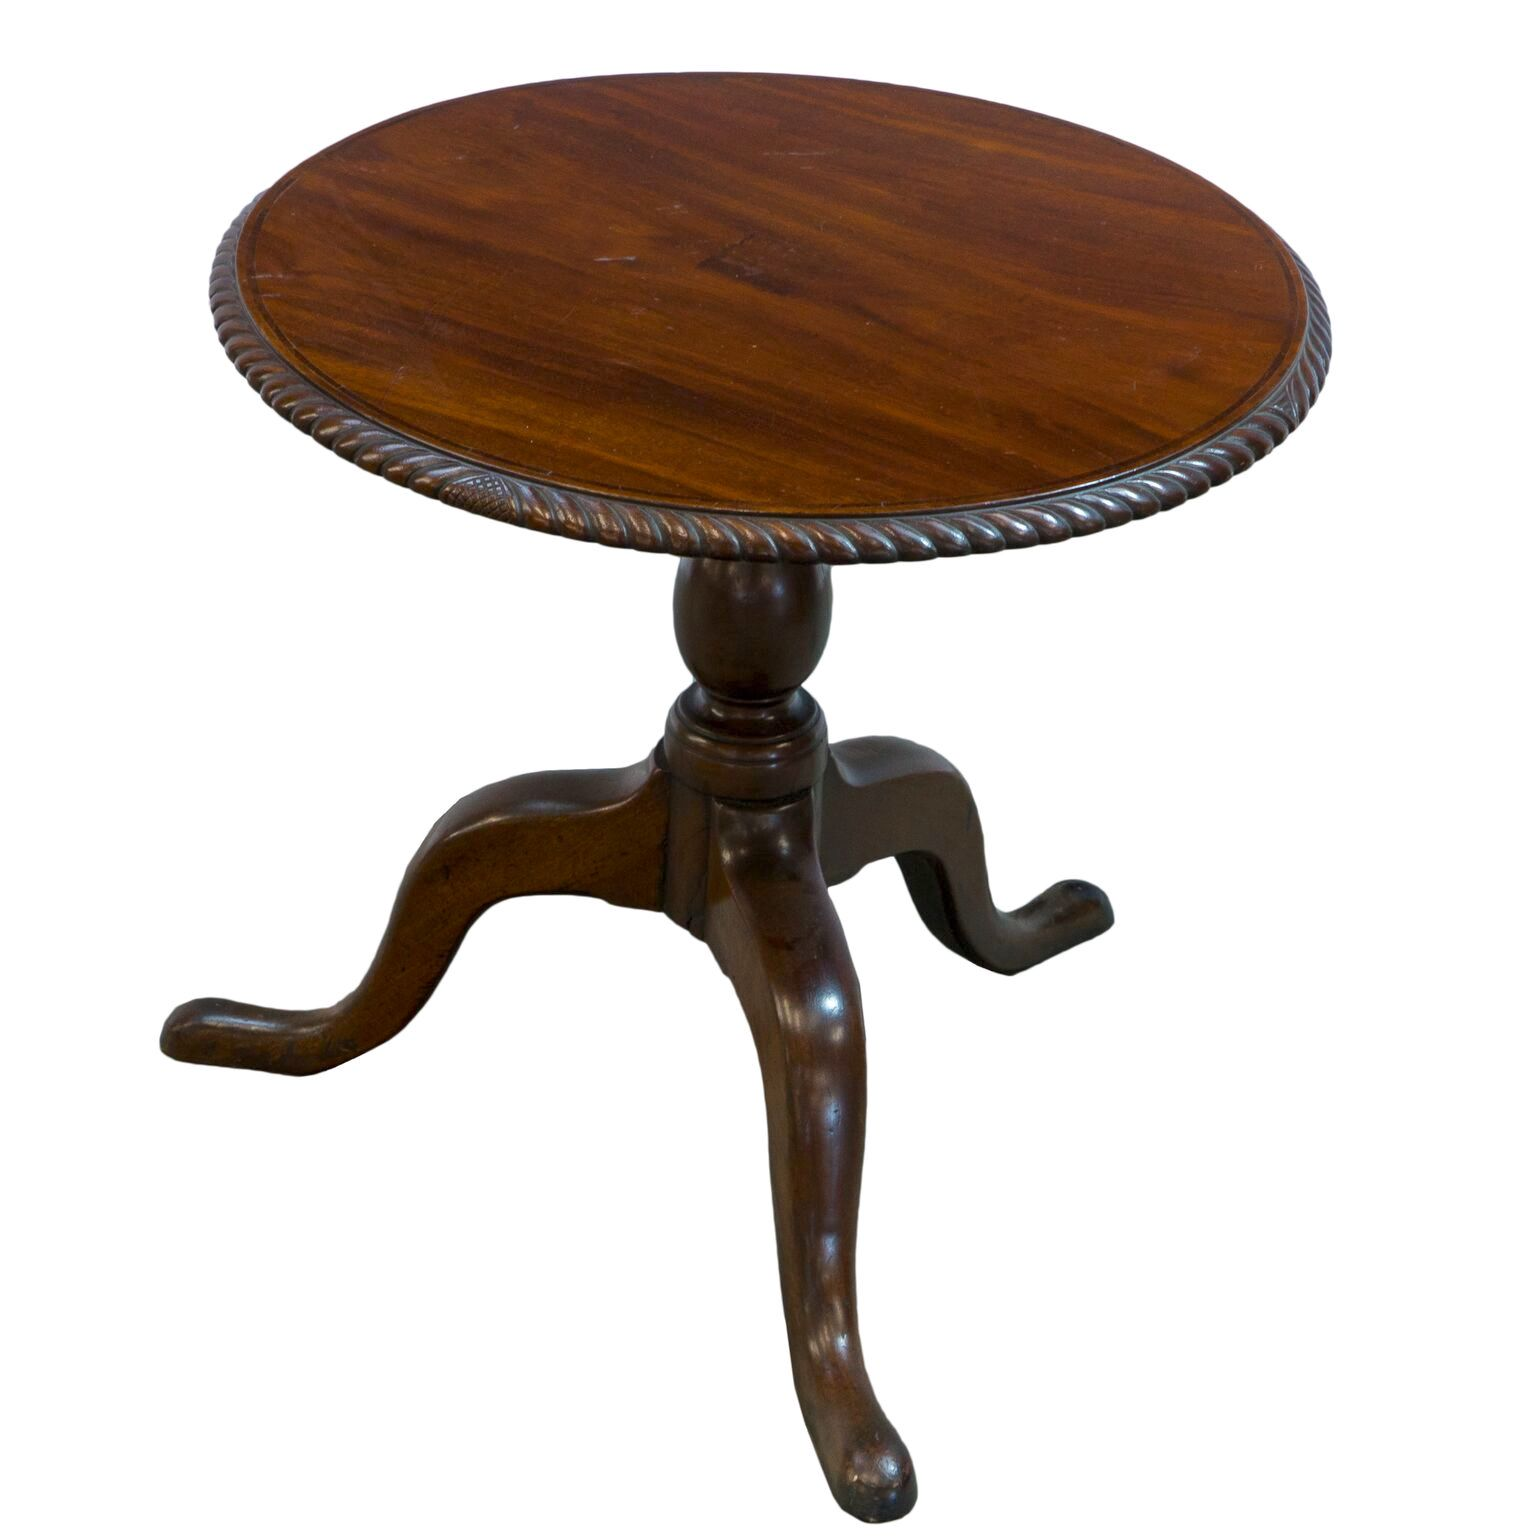 'Georgian Mahogany Wine Table with Yew Wood Inlay and Later Rope Carved Edge'